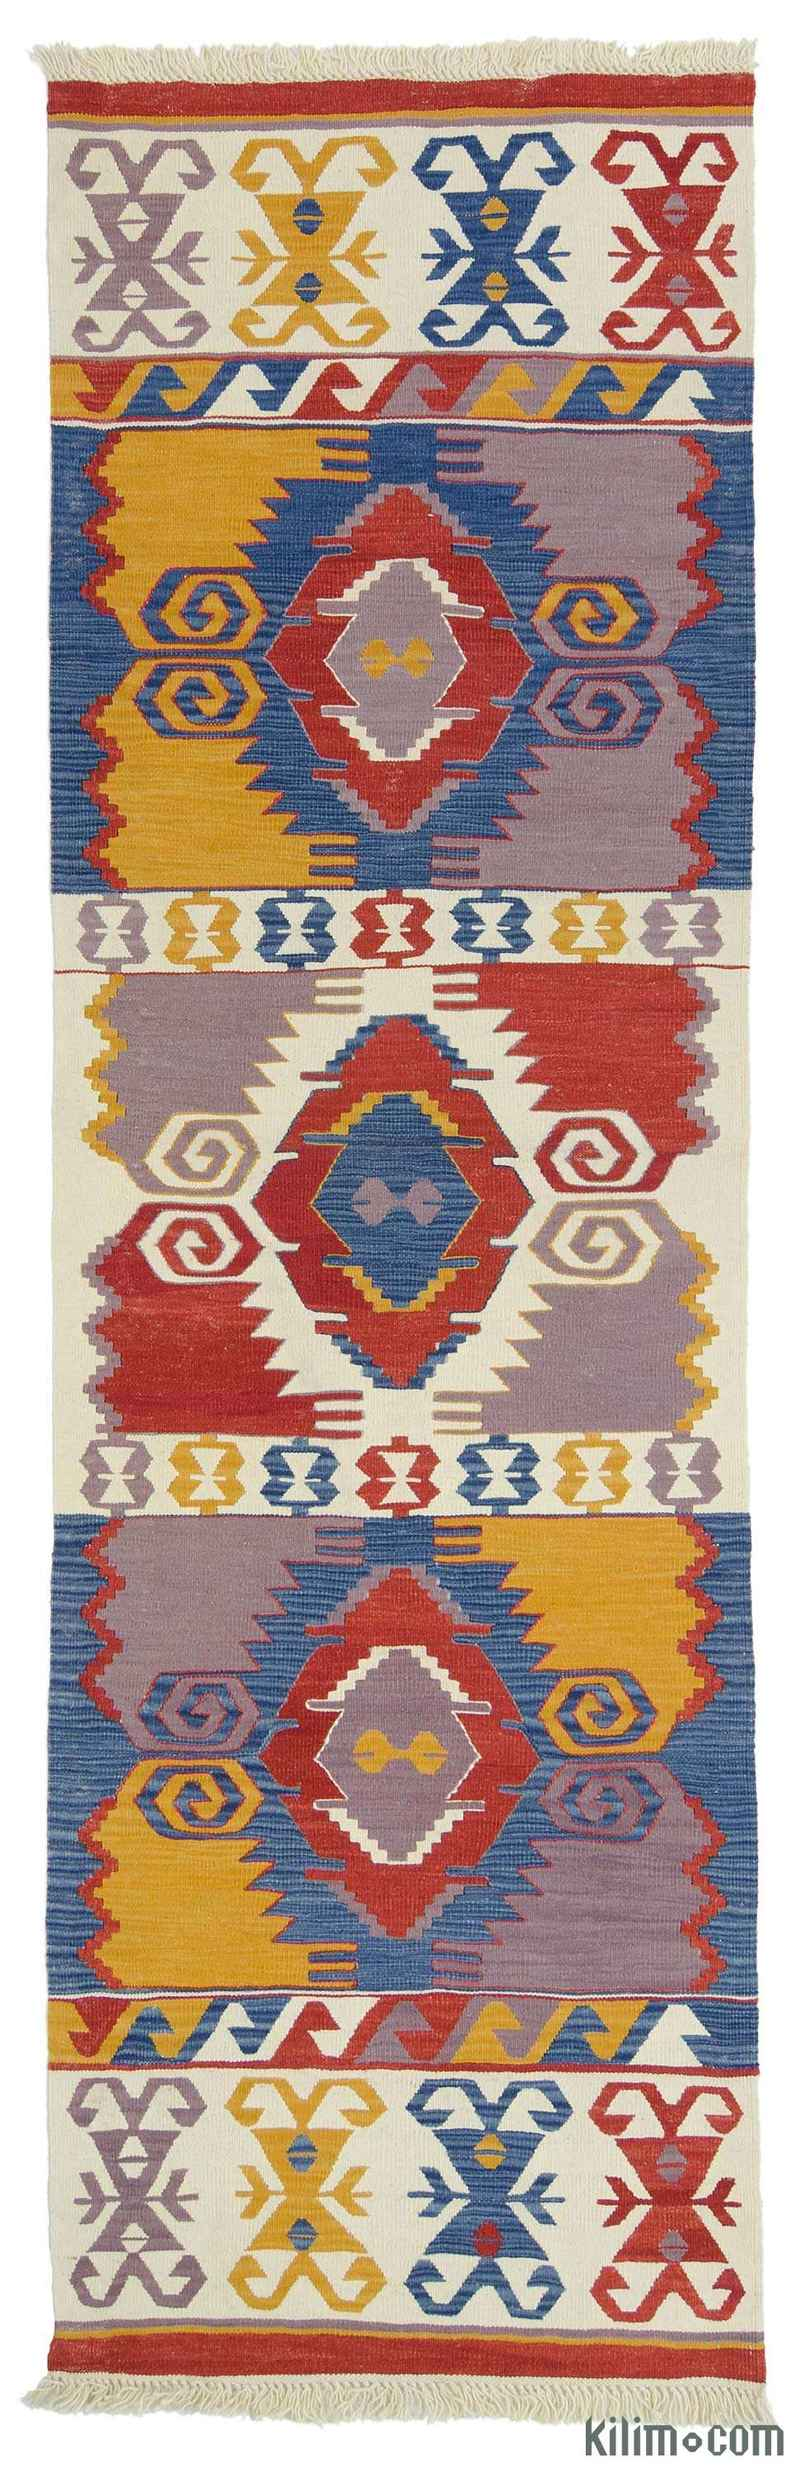 K0010804 New Turkish Kilim Runner Rug